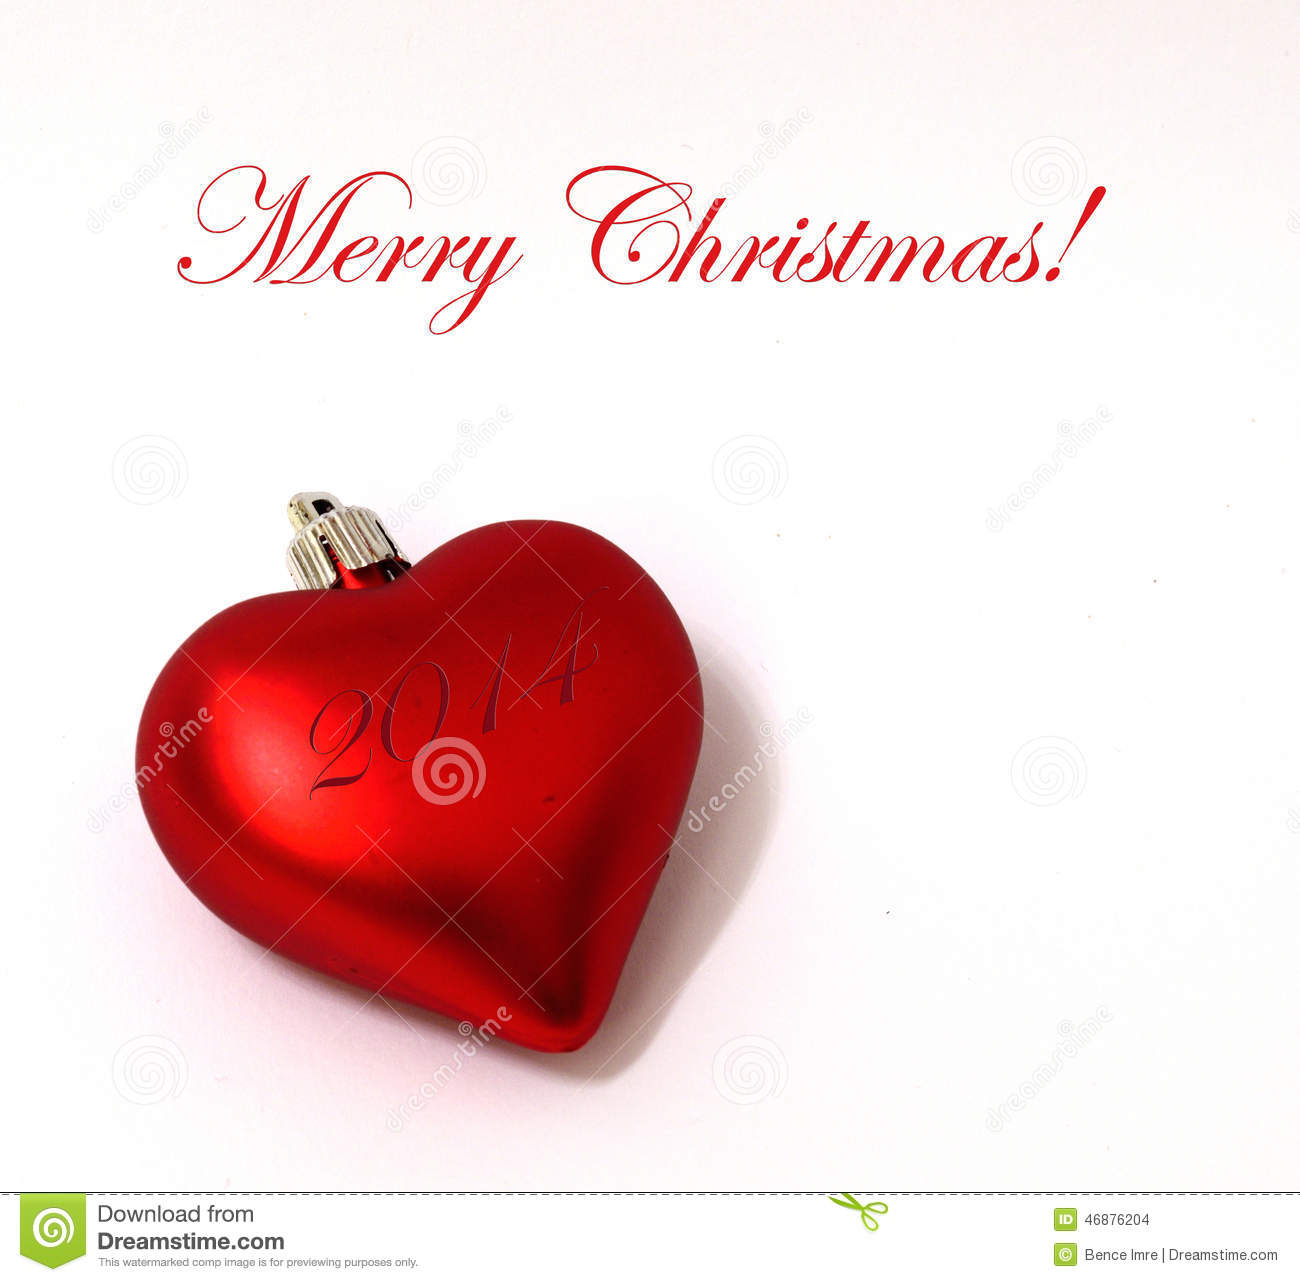 Merry Christmas Heart Ornament Stock Photo - Image of december ...